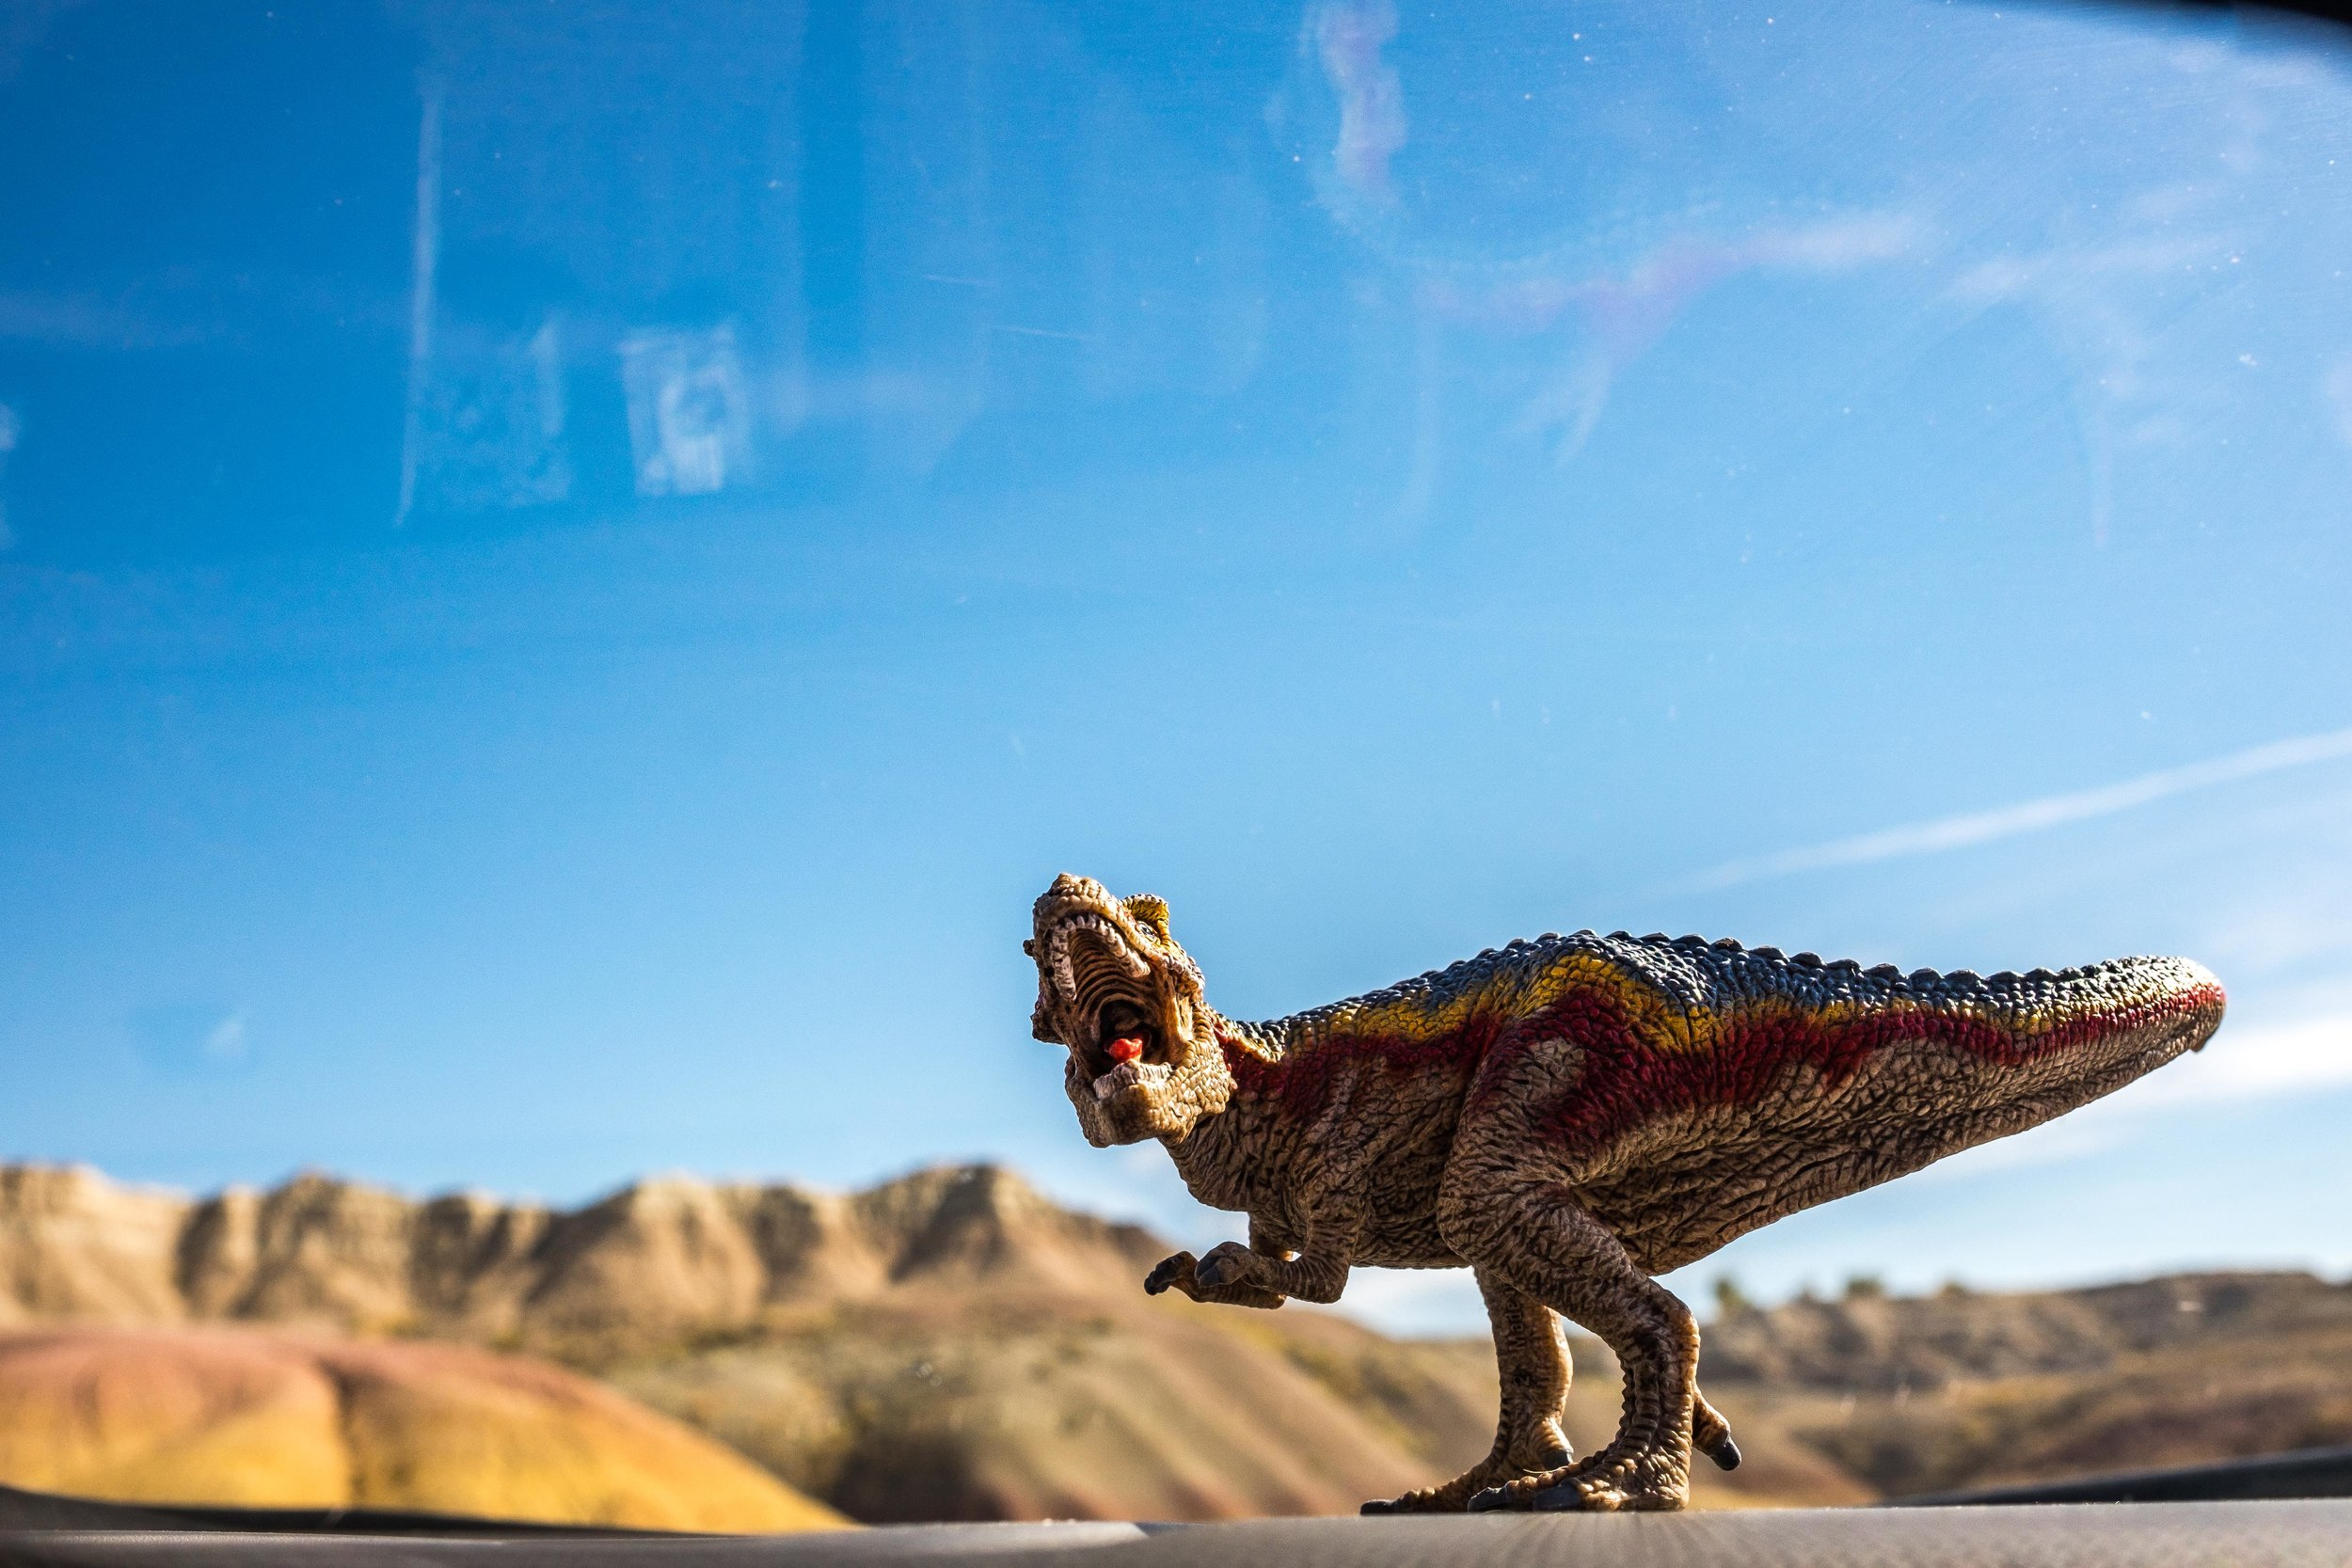 On the road with our dashboard dino in the Badlands in South Dakota!